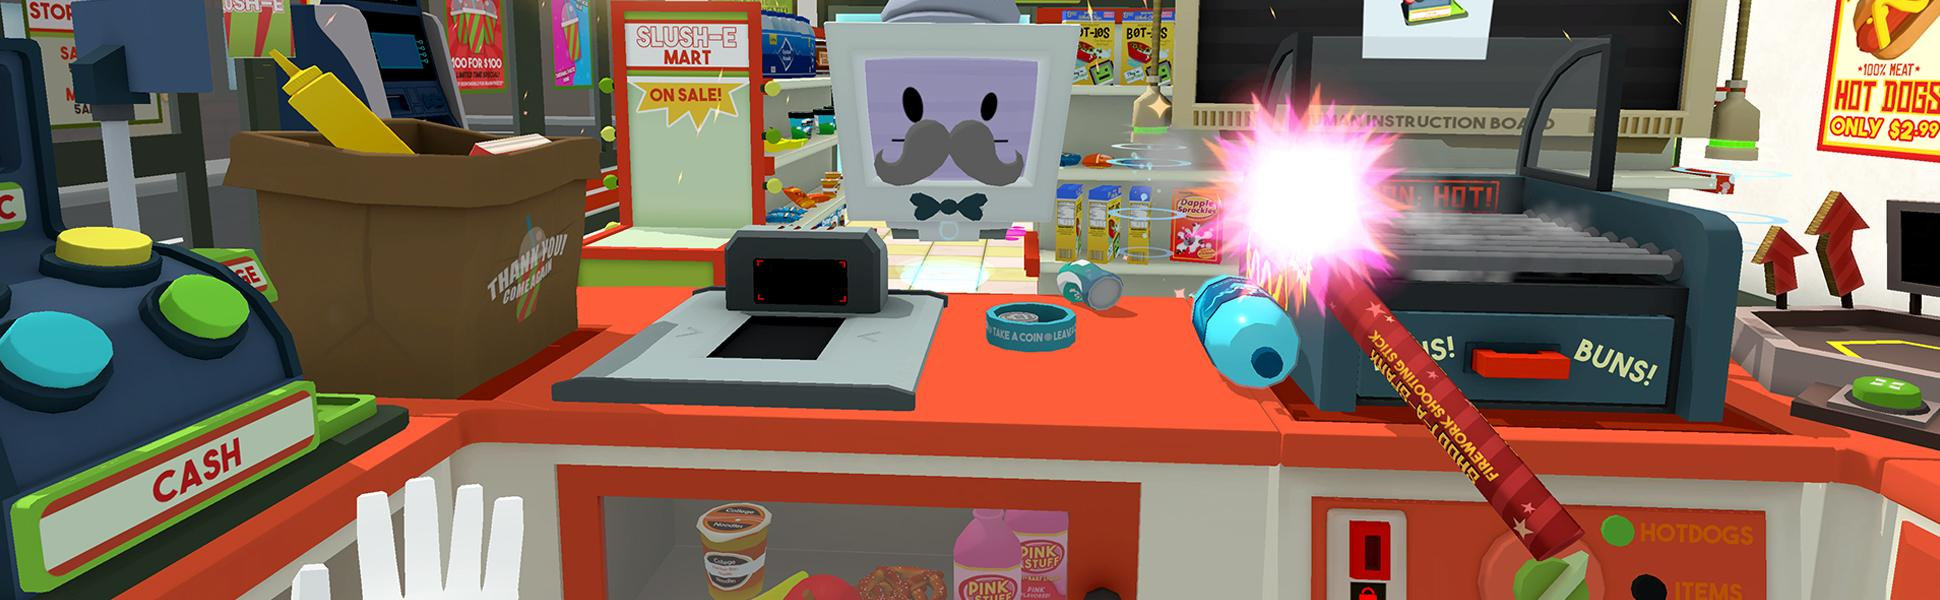 Amazon.com: Job Simulator - PlayStation VR: Video Games